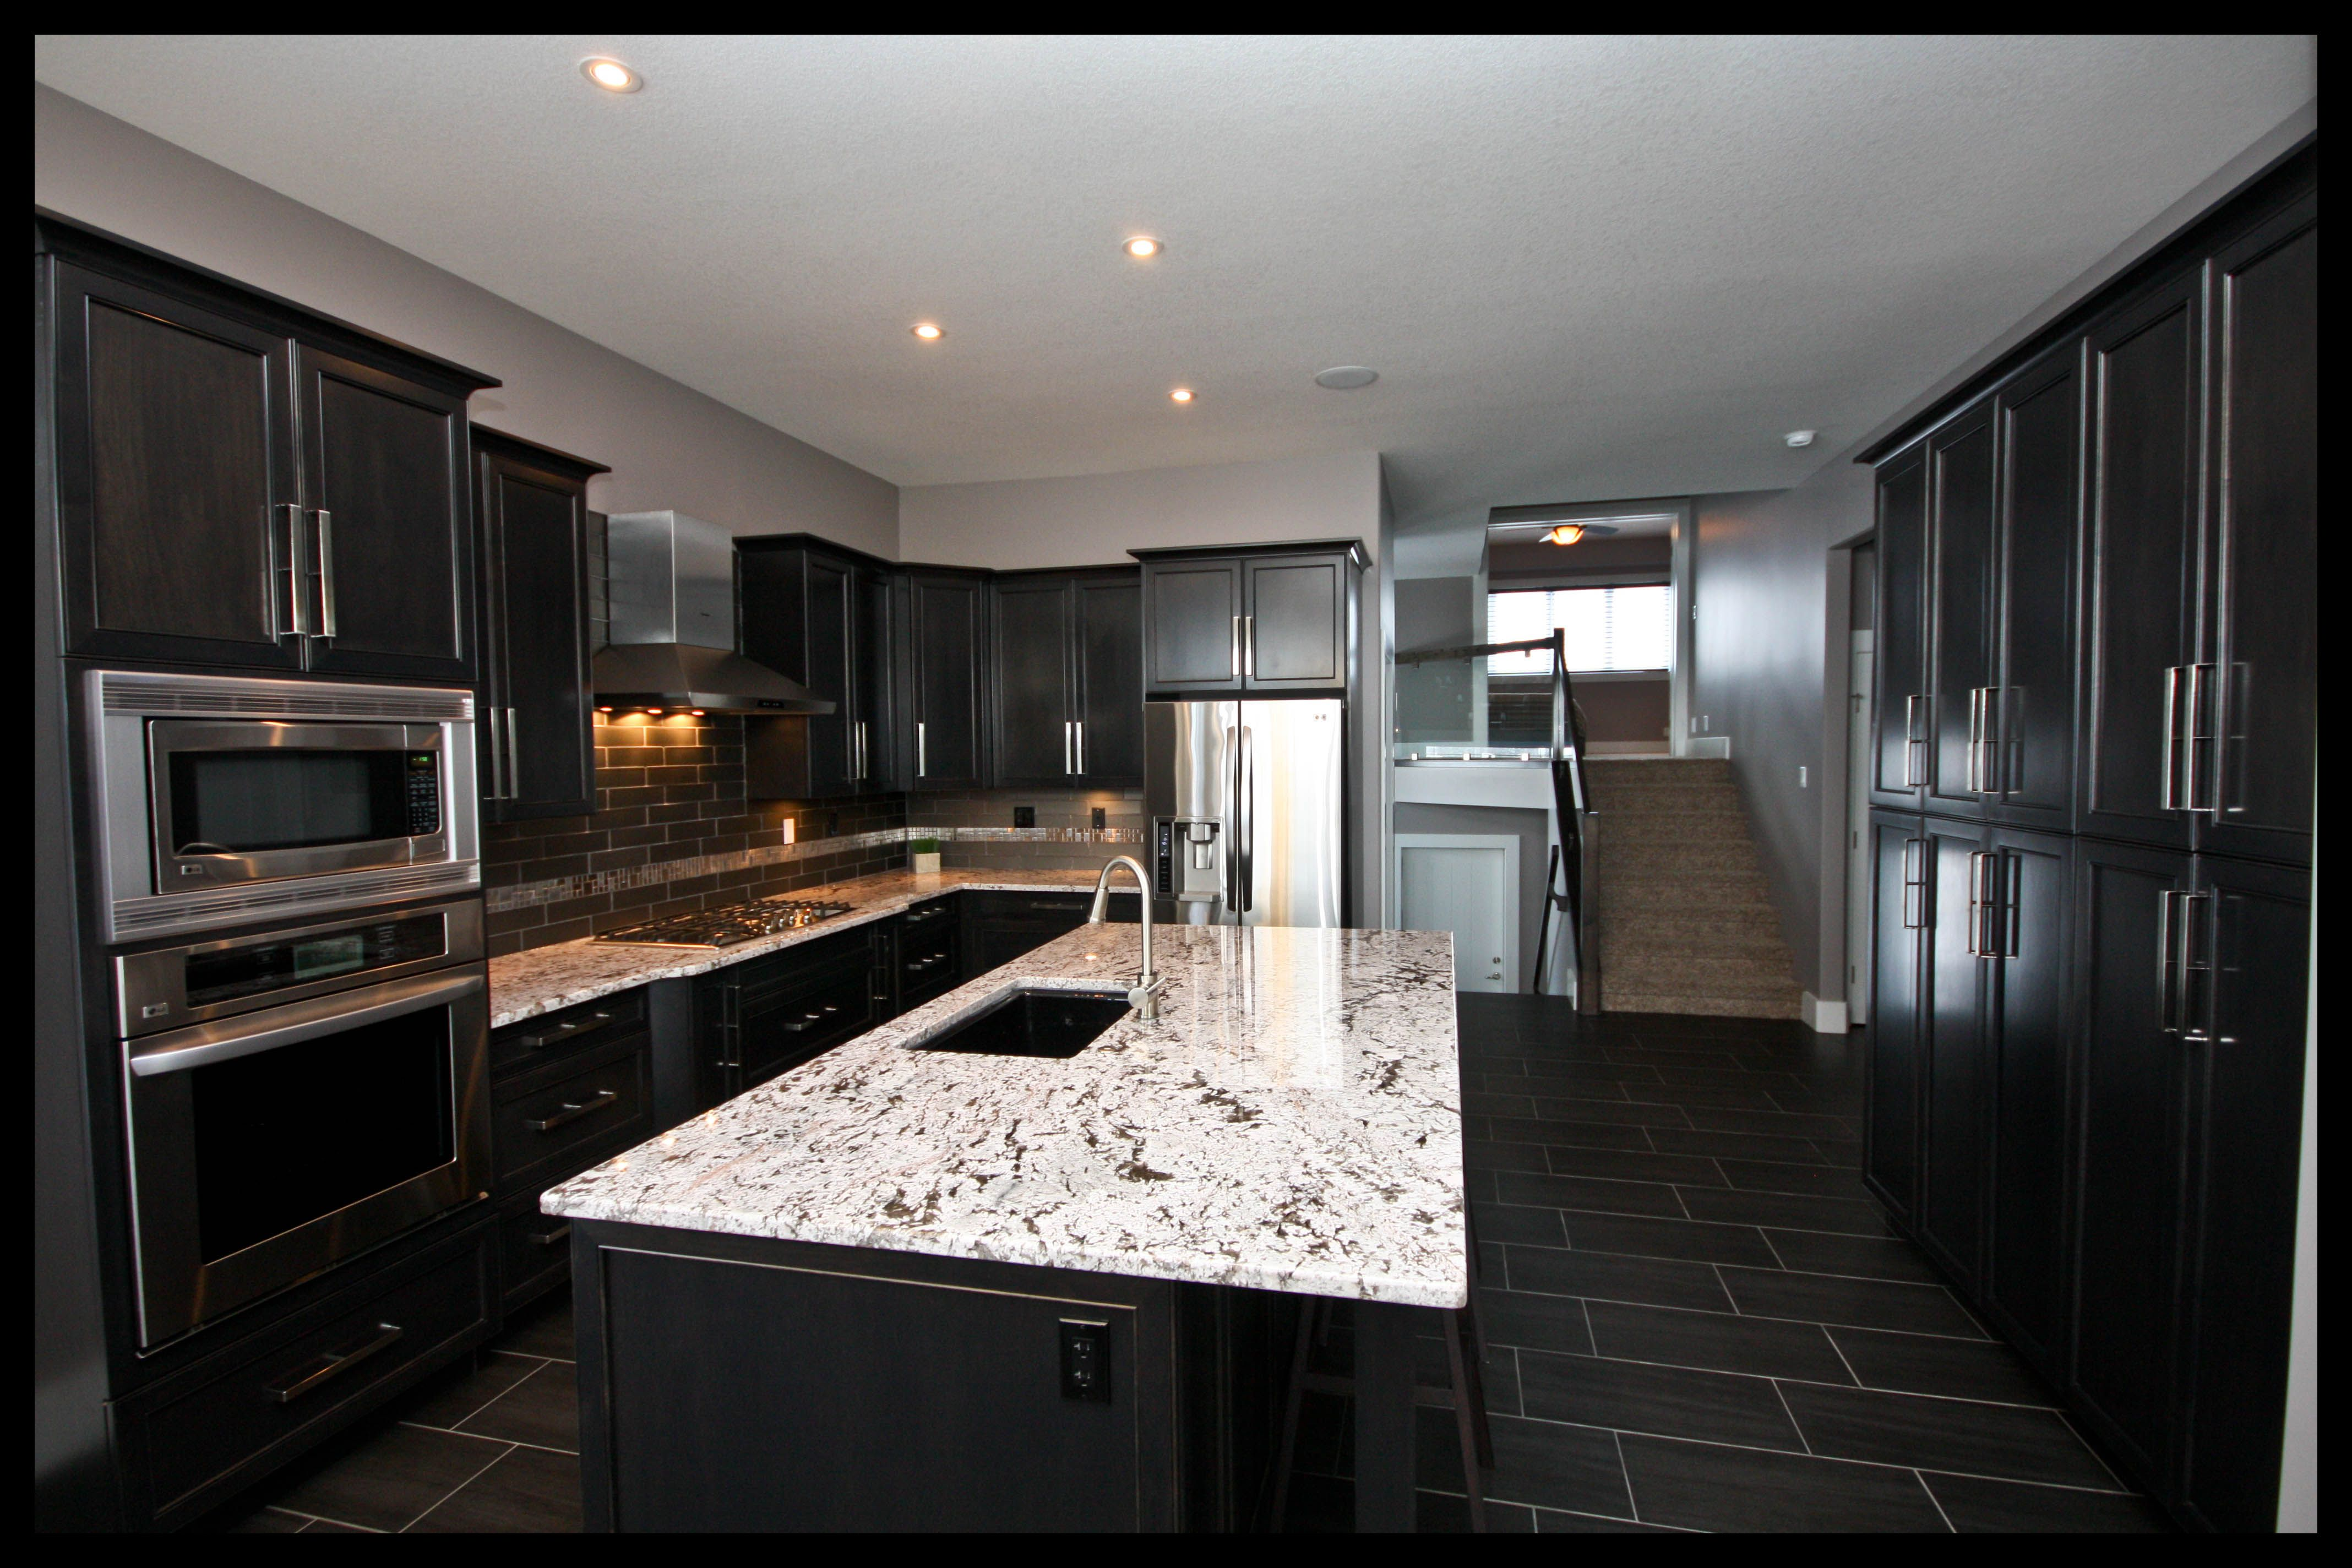 Building New Homes In Central Alberta Maple Kitchen Cabinets Maple Kitchen Maple Cabinets